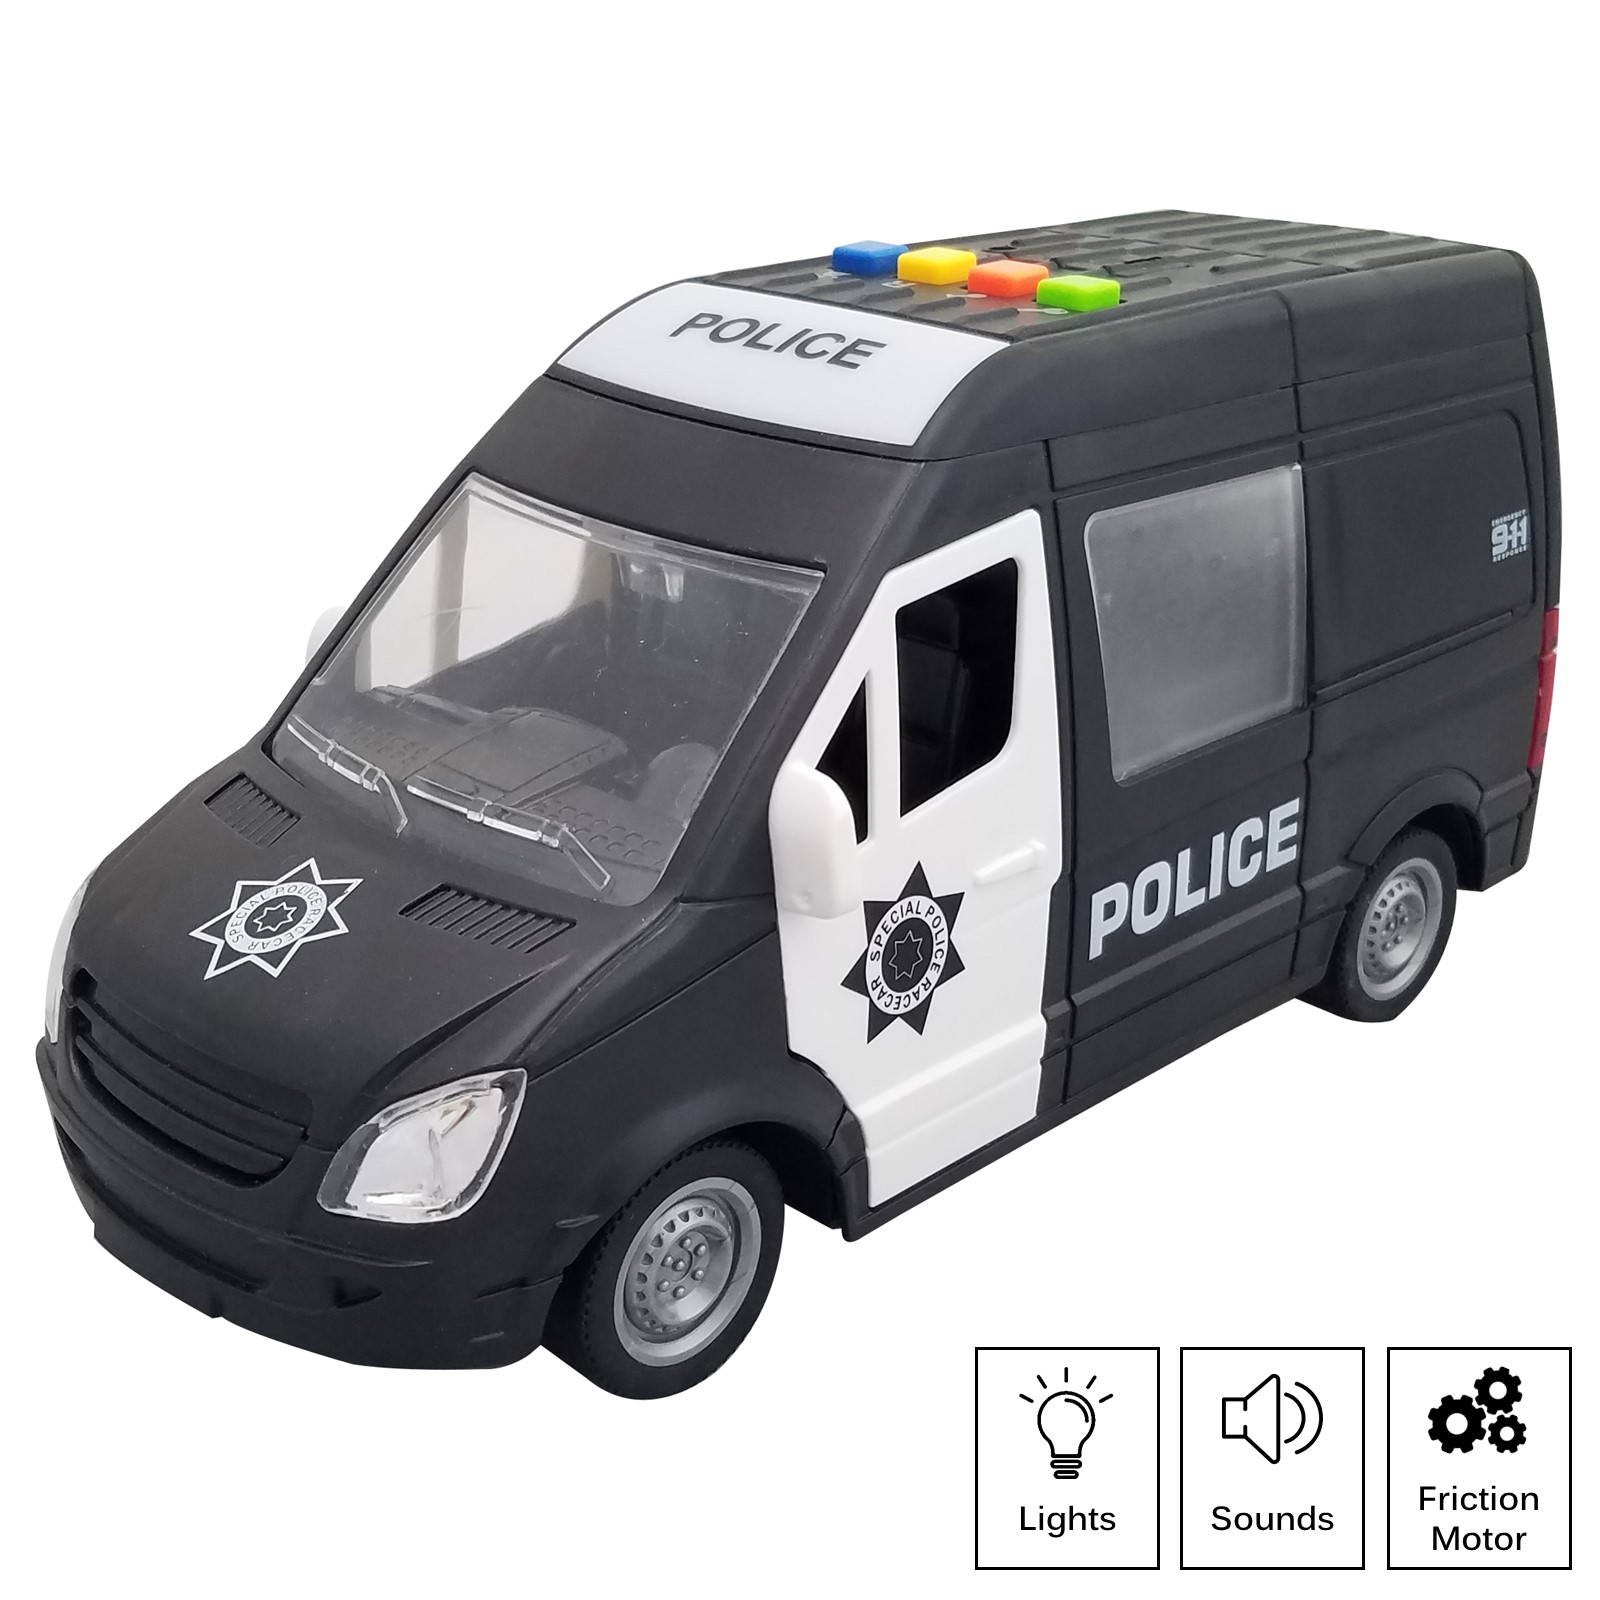 Rescue Police Car Friction Powered 116 Scale With Lights And Sound Effects Durable Kids SWAT Transport Vehicle Push And Go Pretend Play Emergency Toy Cop Van Great Gift For Children Boys Girls